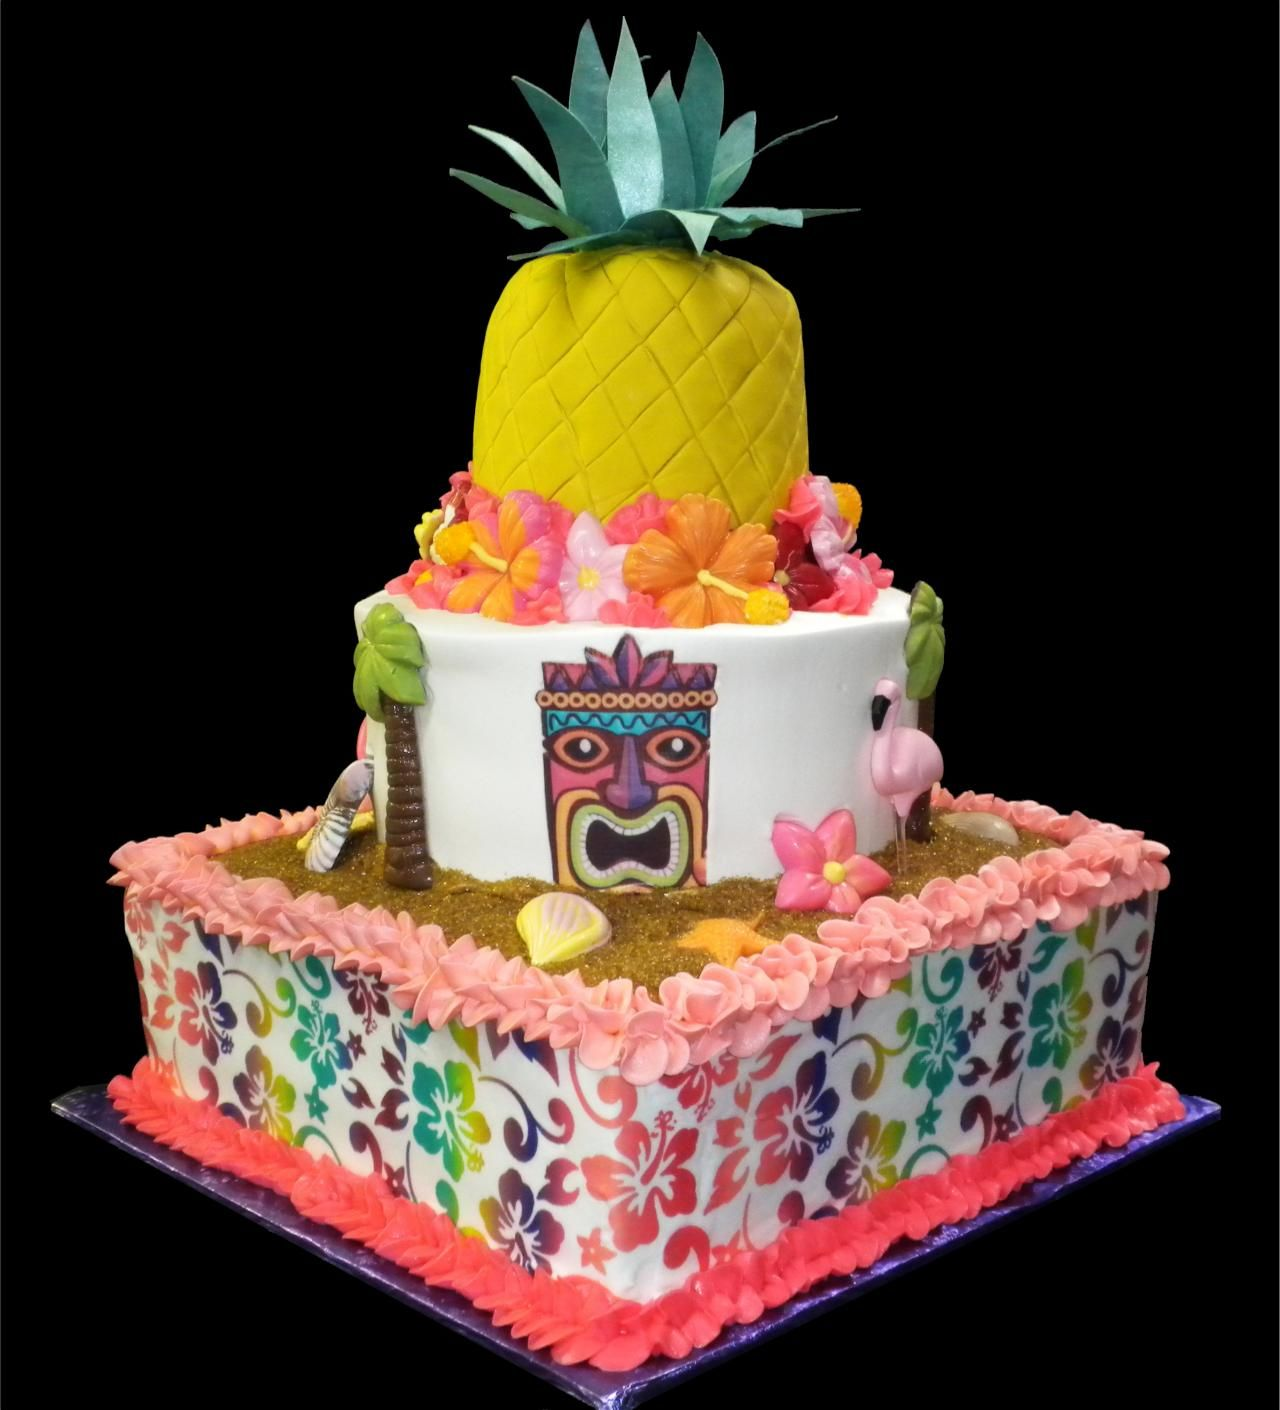 Hawaiian Birthday Cake White And Yellow Buttercream Iced